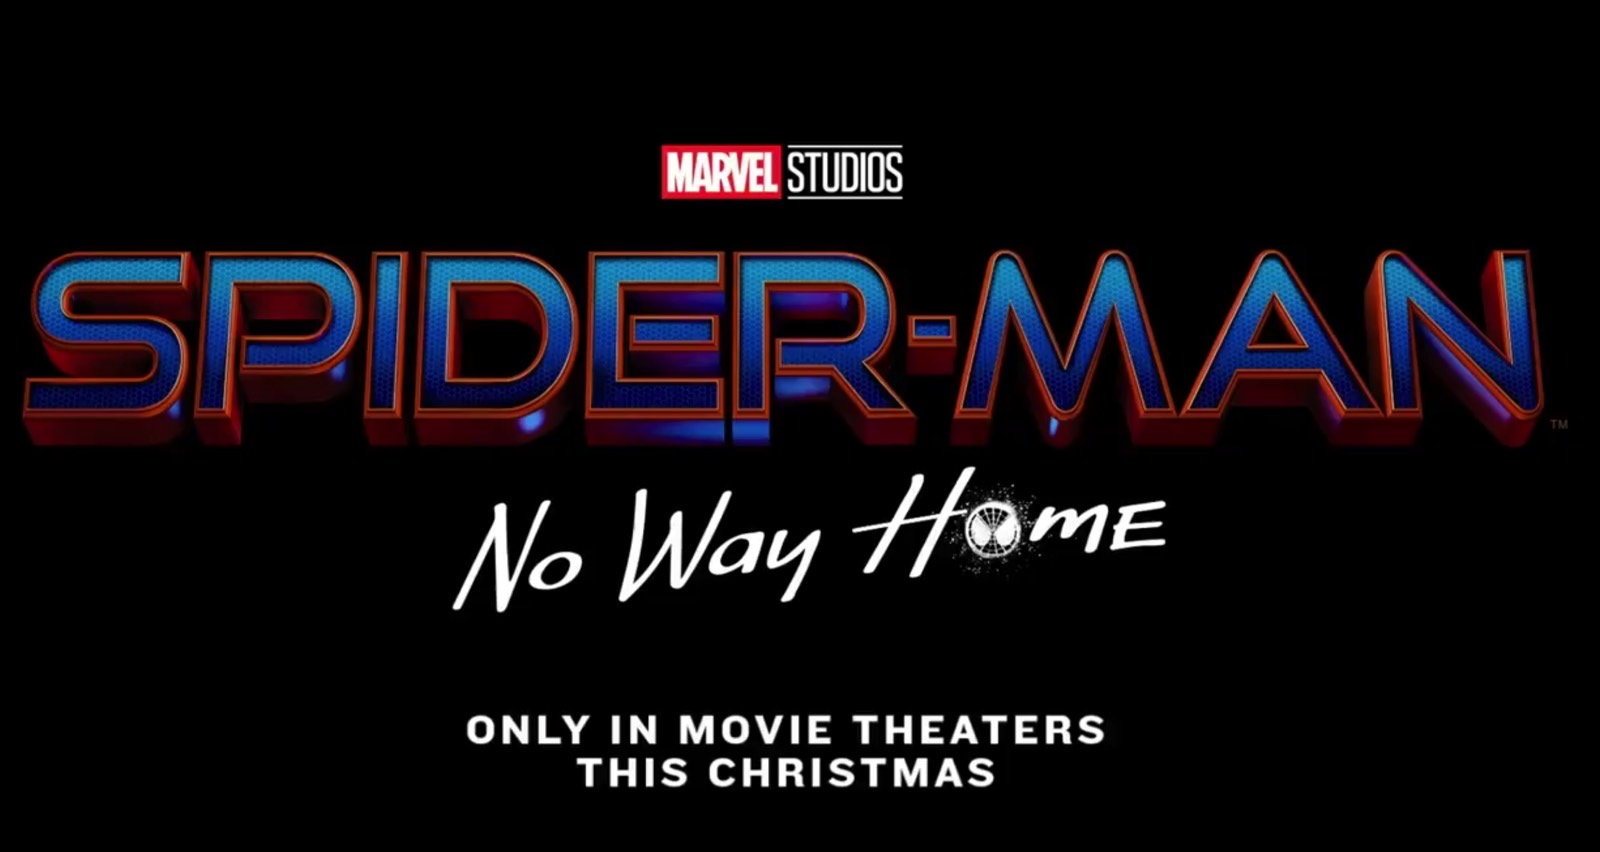 'Spider-Man 3' finally has a title: 'Spider-Man: No Way Home'